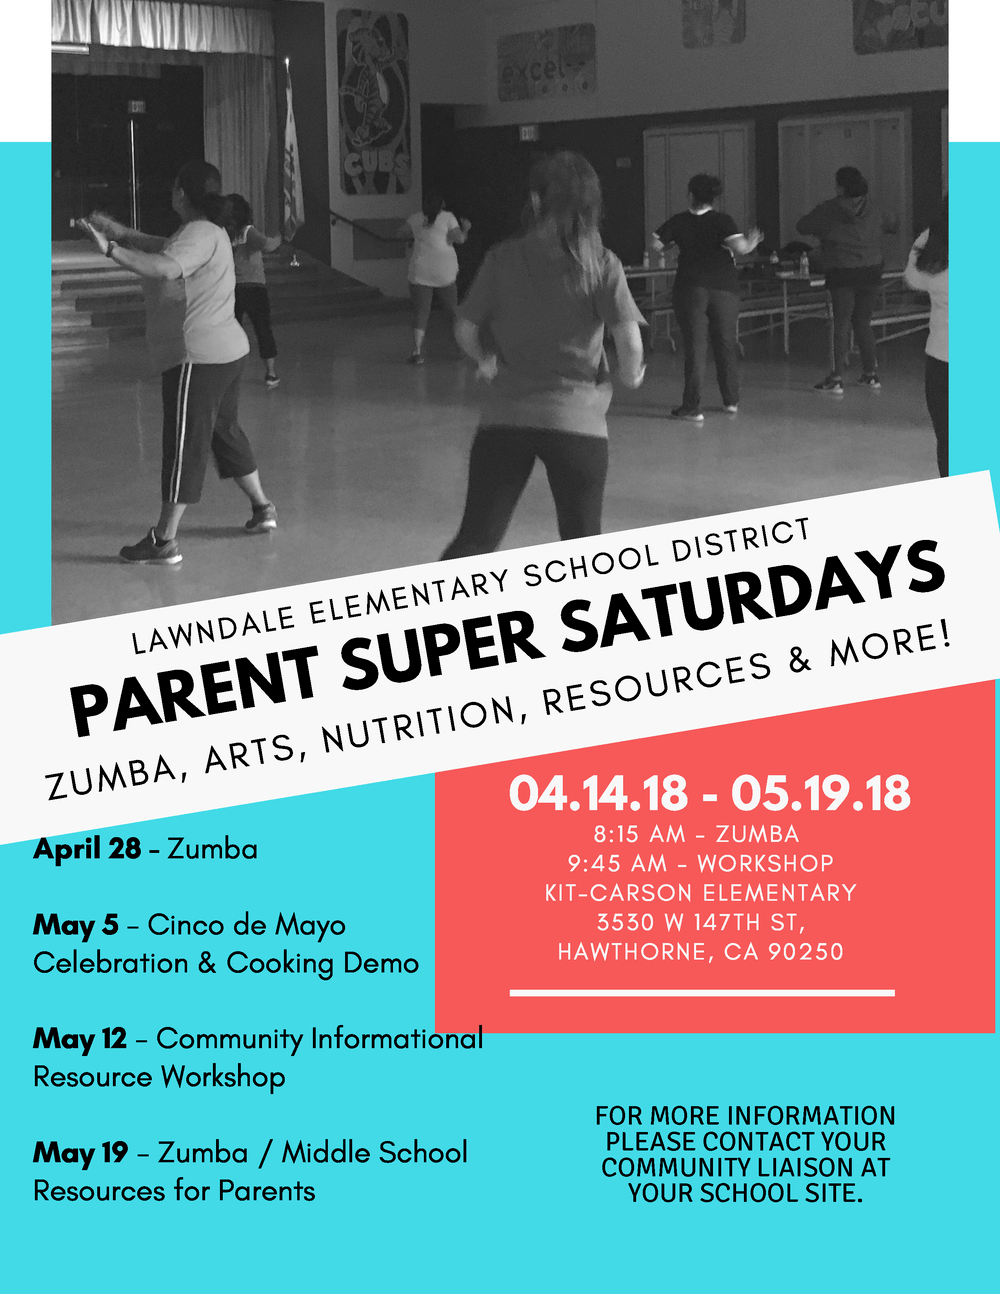 Parent Super Saturdays flyer